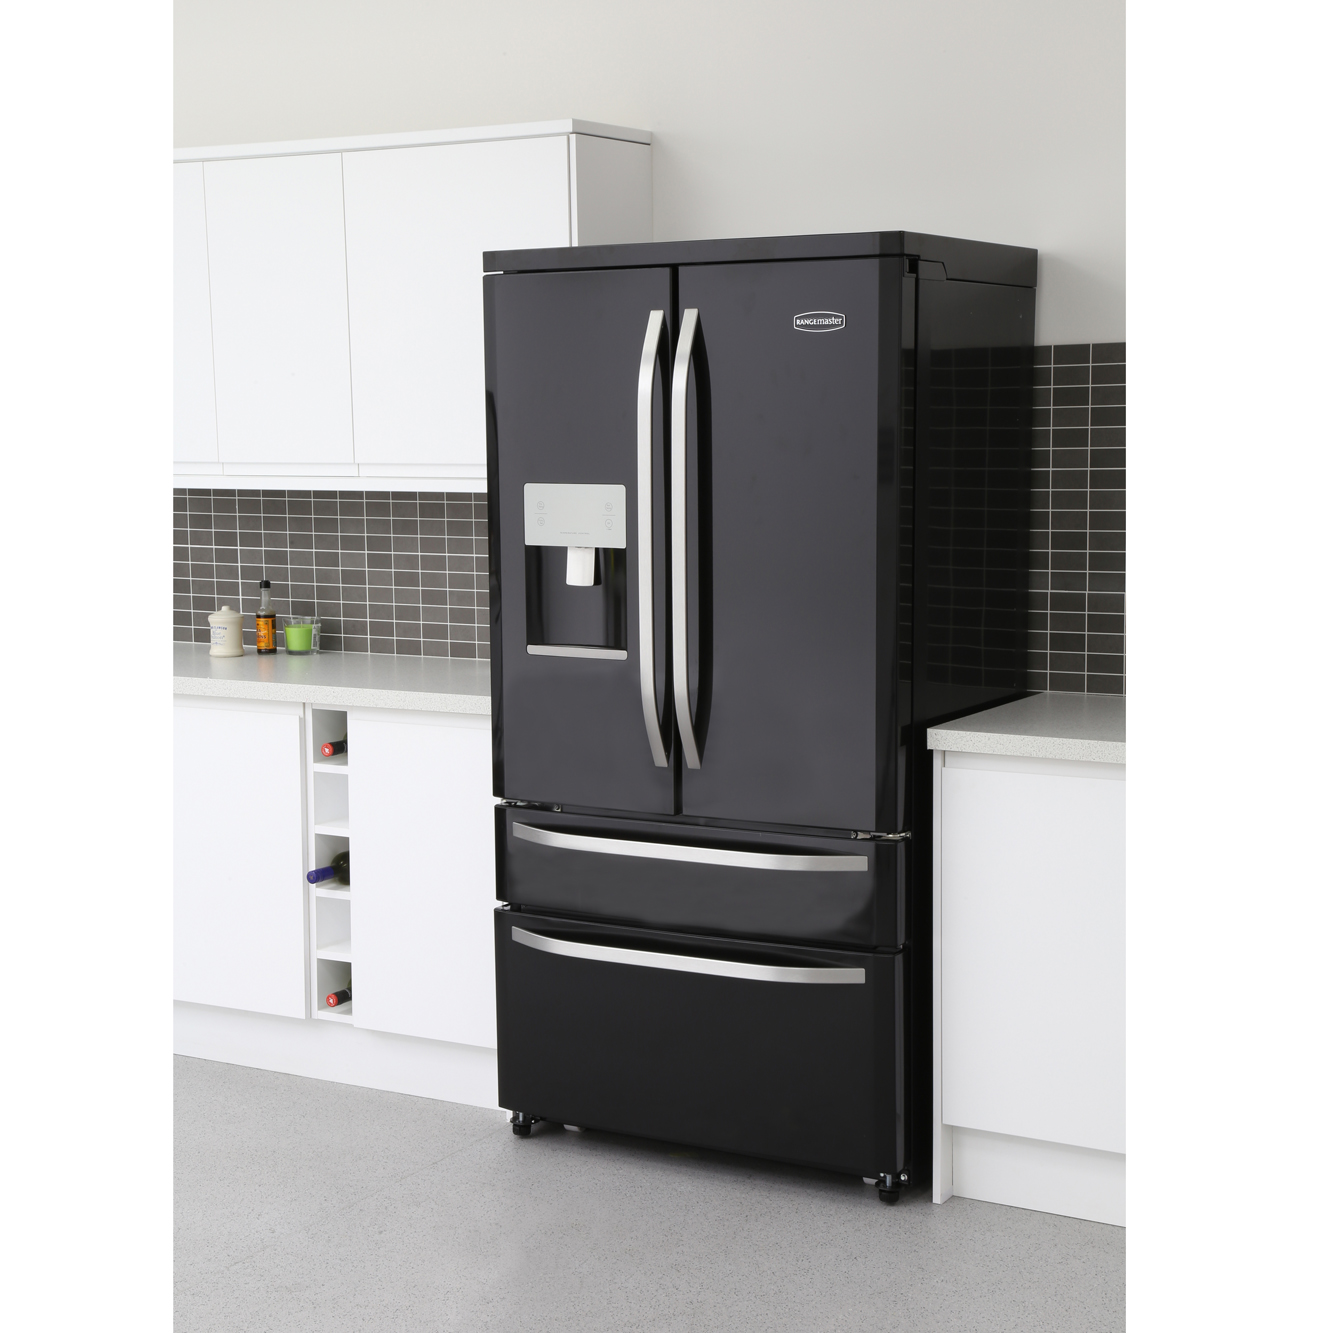 buy rangemaster rdxd15bl c dxd15 black american fridge. Black Bedroom Furniture Sets. Home Design Ideas